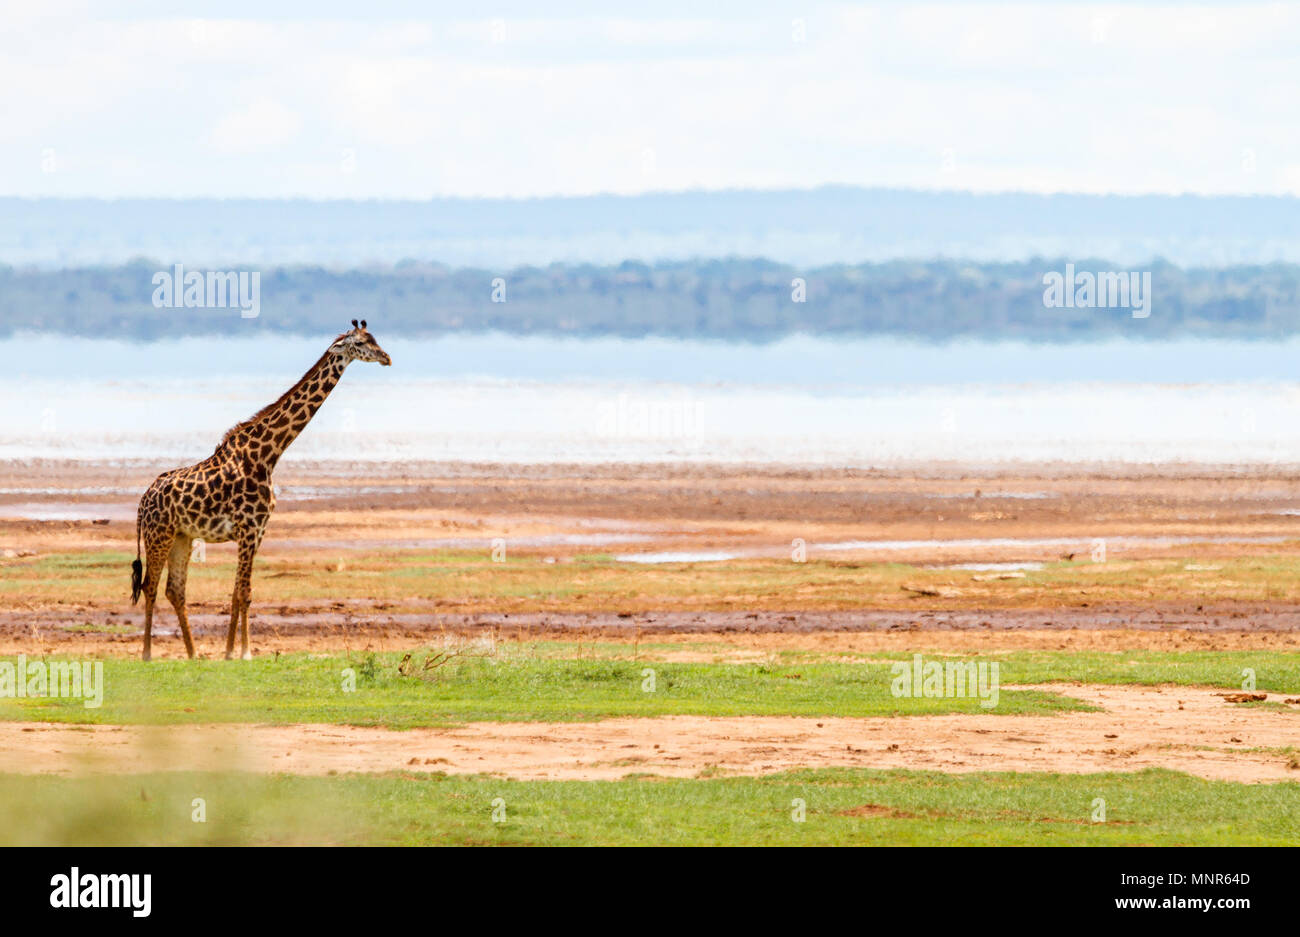 Giraffe in Lake Manyara national park, Tanzania - Stock Image